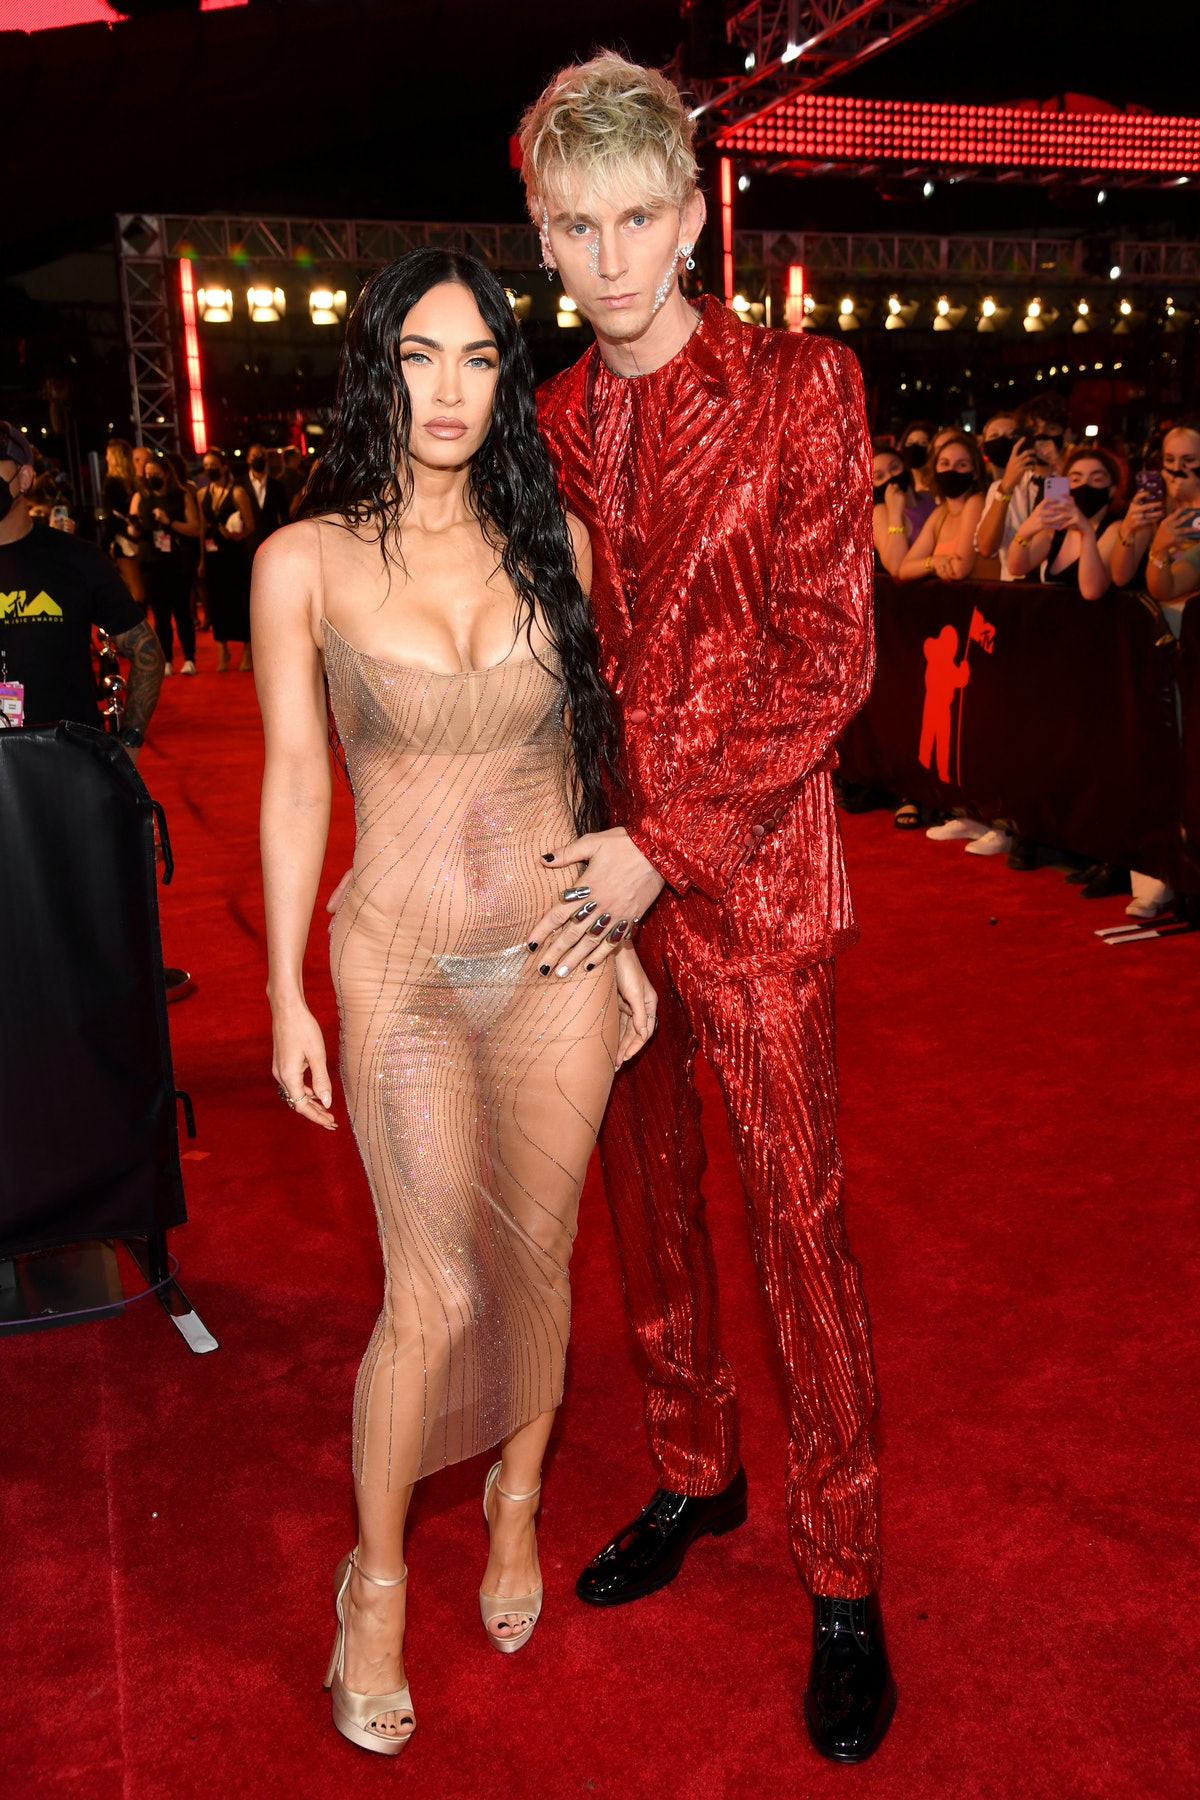 Megan Fox and Machine Gun Kelly attend the 2021 MTV Video Music Awards at Barclays Center on Septemb...